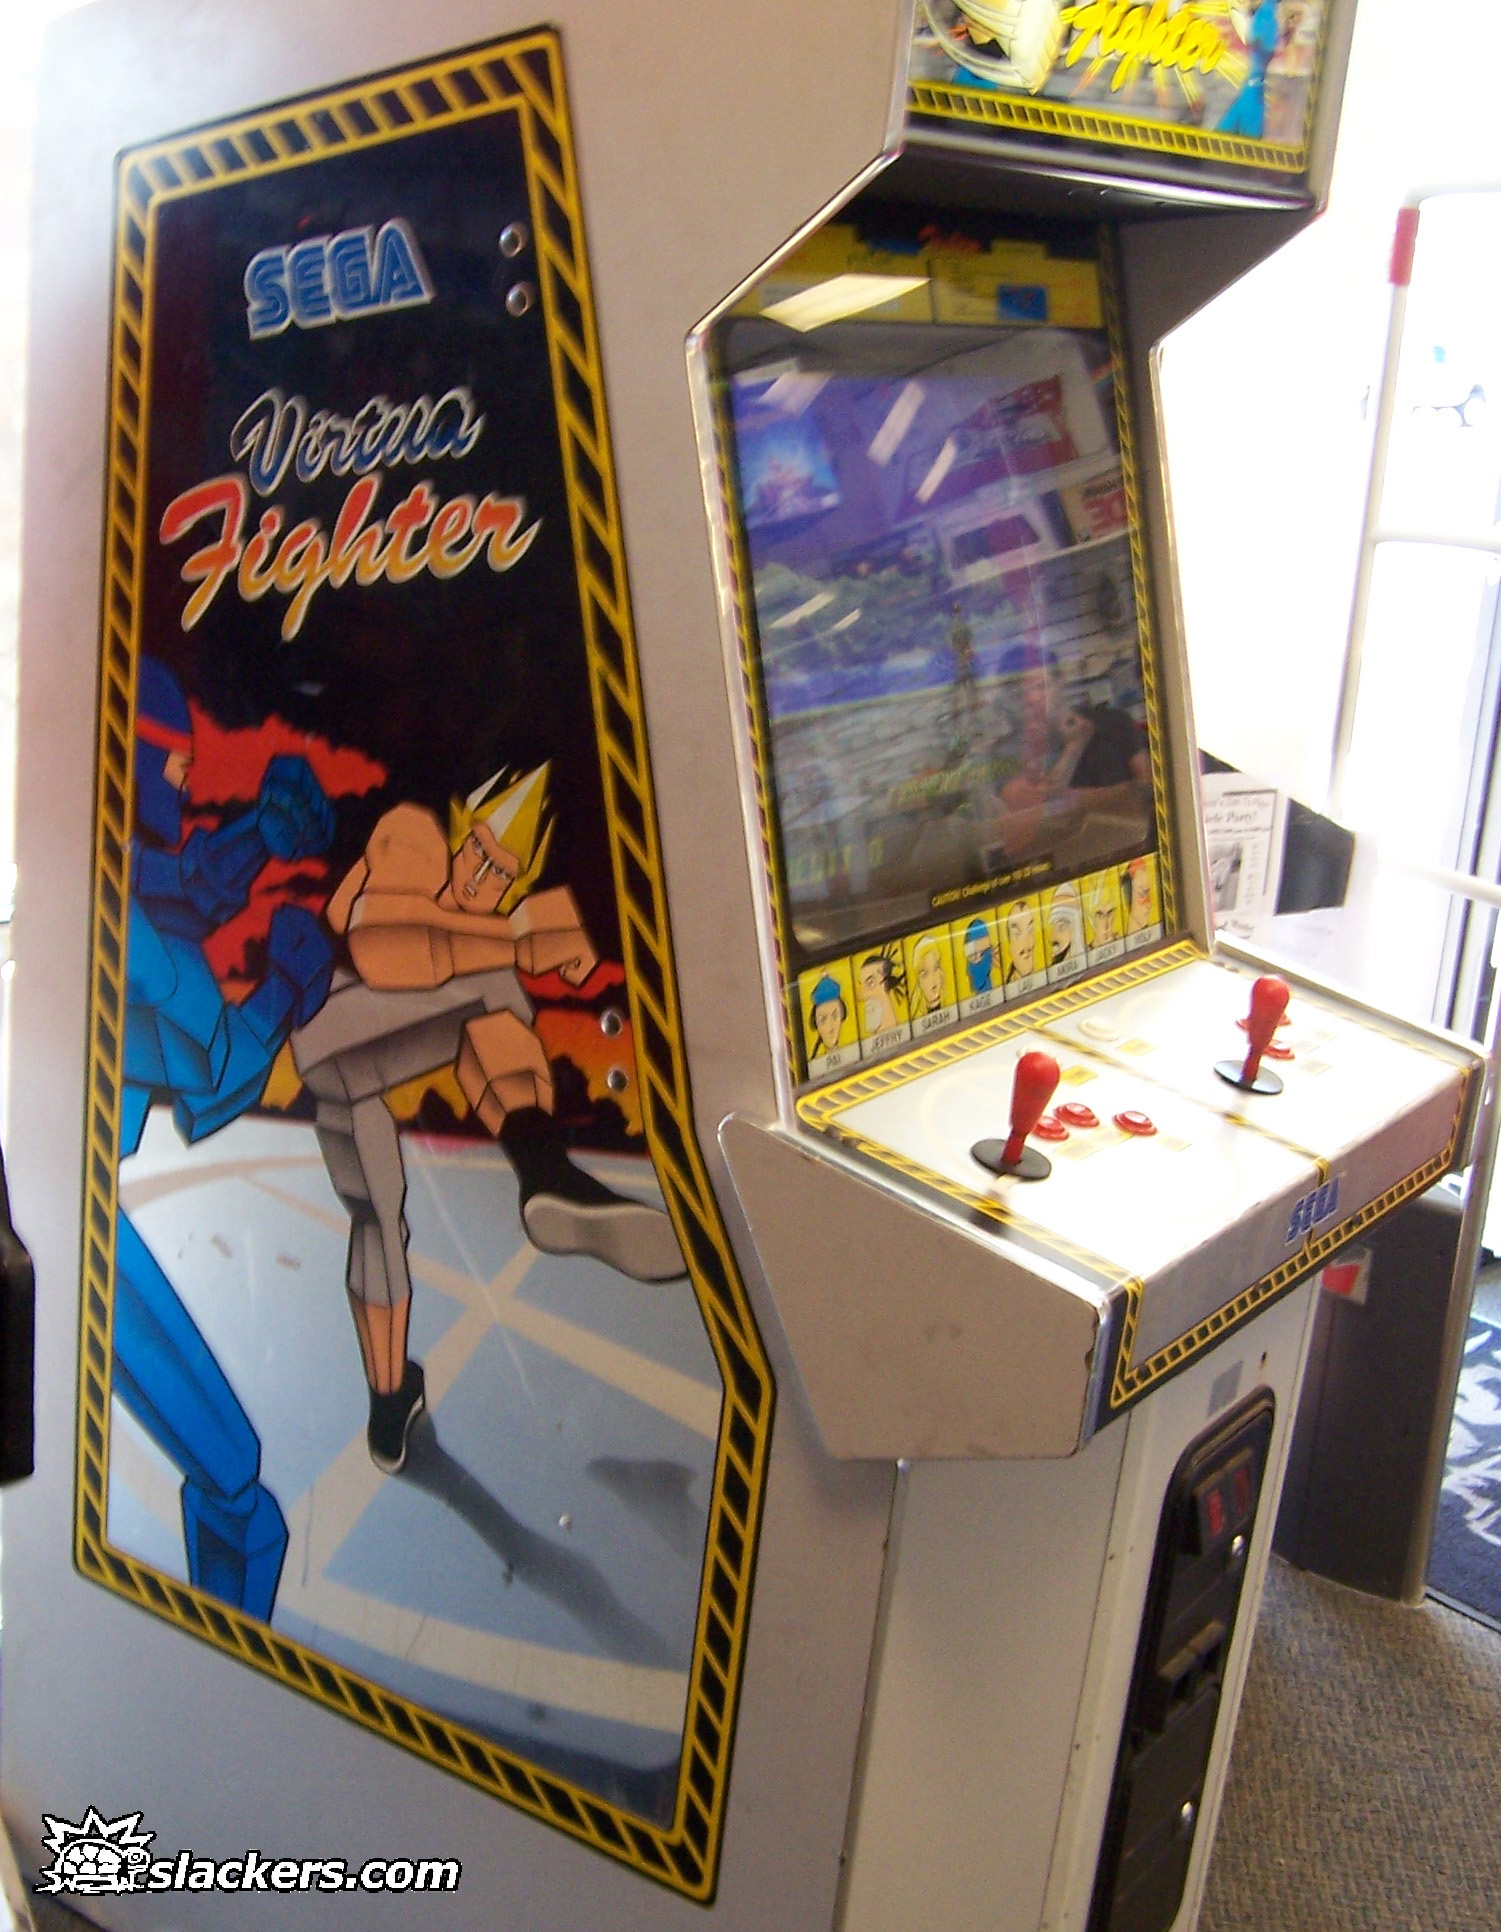 virtua fighter arcade machine